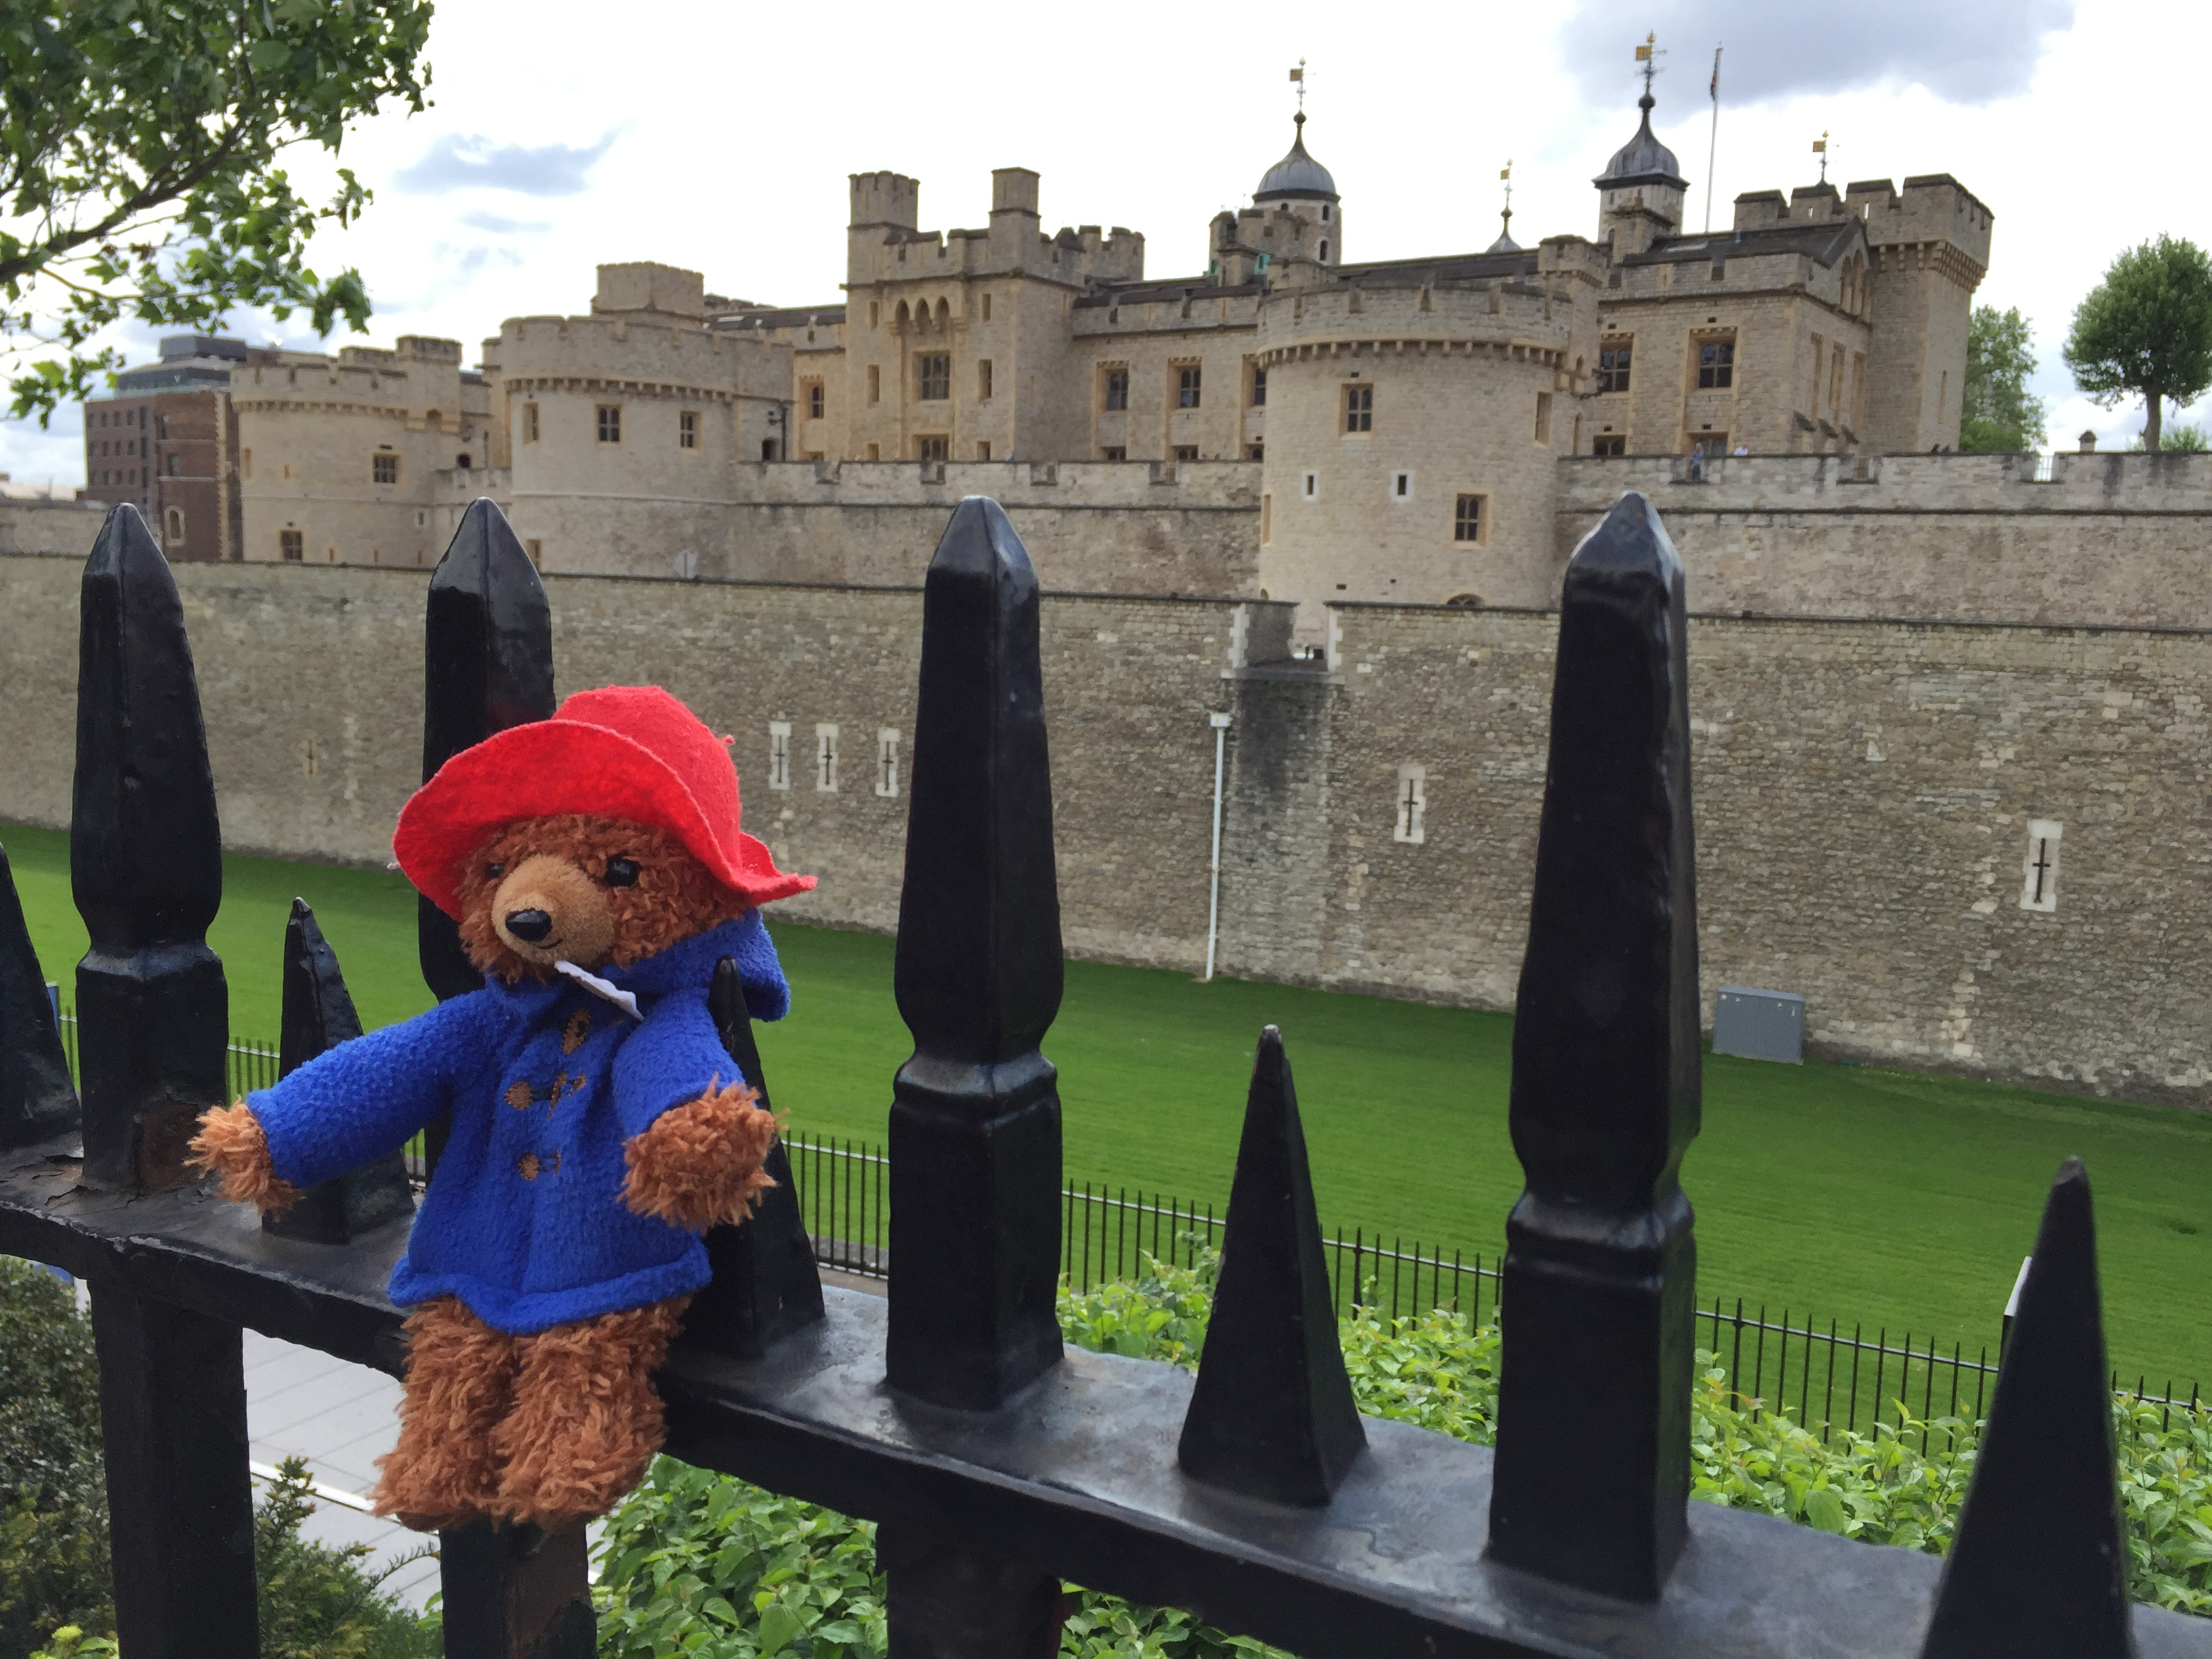 Homeschool Field Trip to England: Tower of London